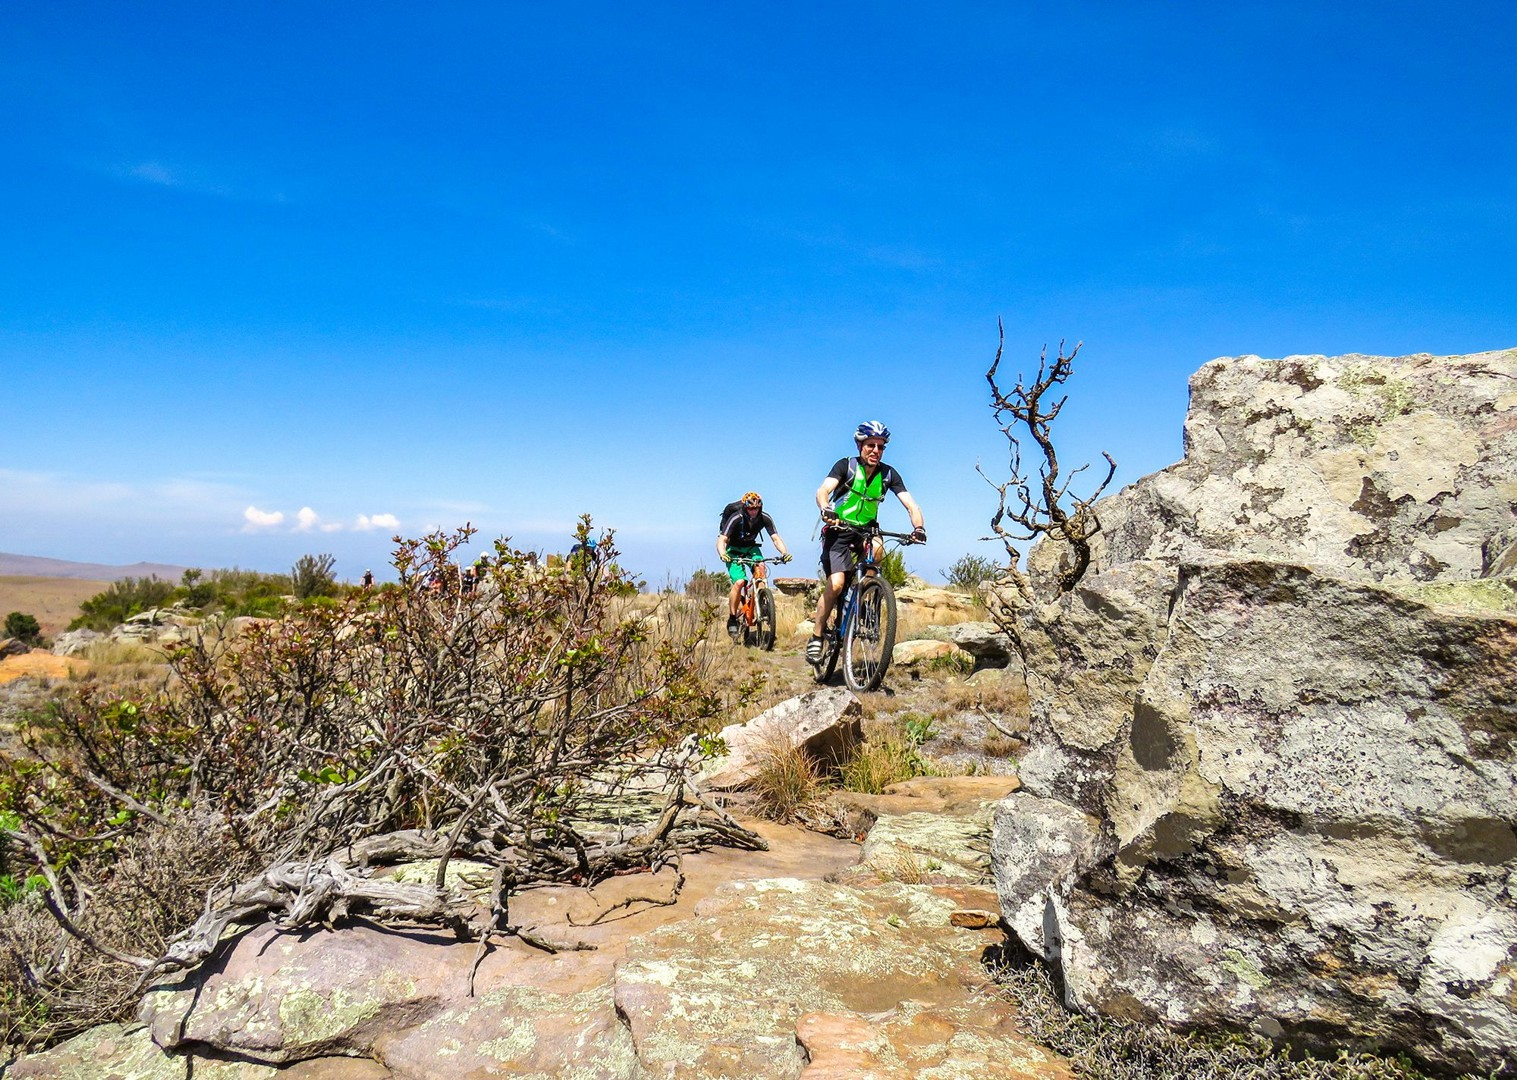 mtb-holiday-with-skedaddle-south-africa-botswana-land-of-the-giants-trip.jpg - NEW! South Africa and Botswana - Mountain Biking